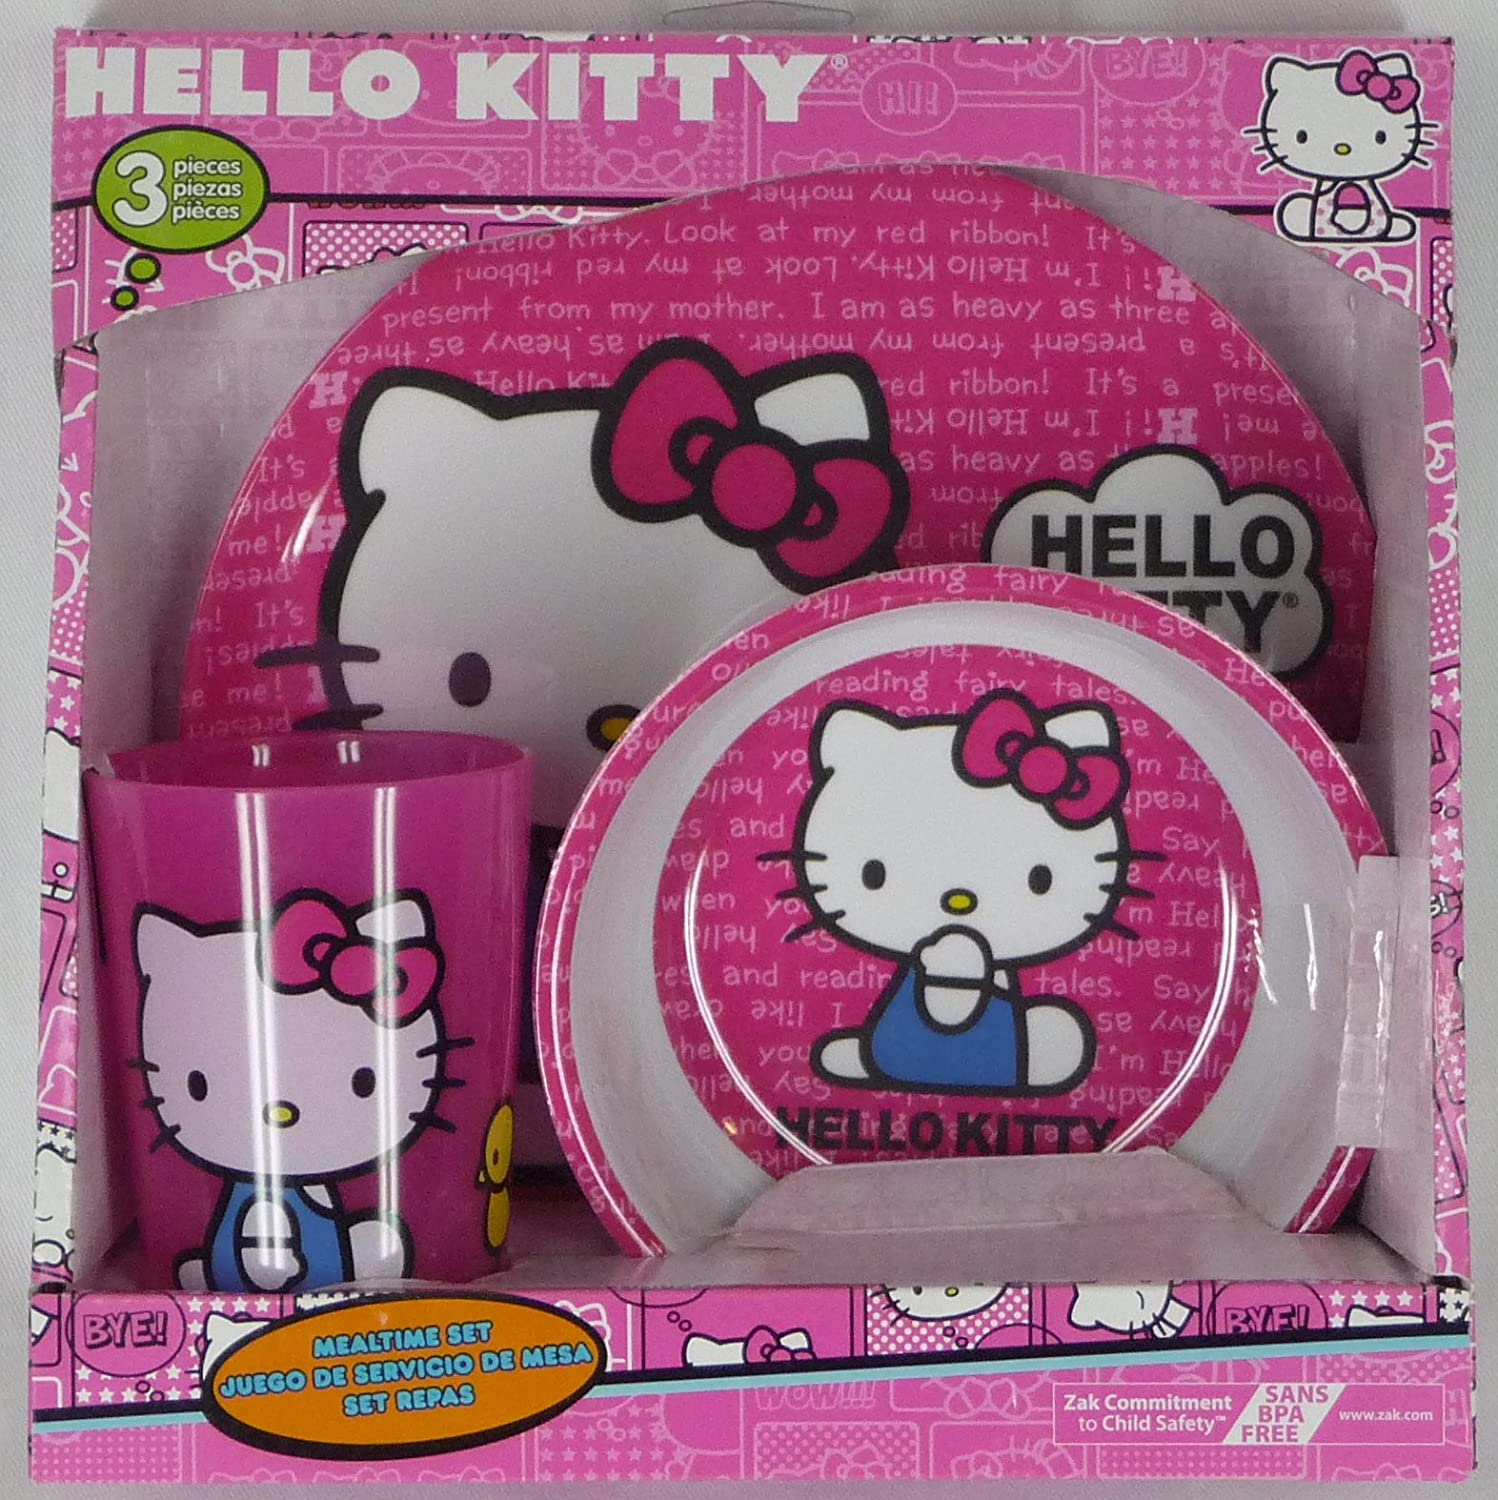 Amazon.com: Hello Kitty Mealtime Dish Set Bowl Plate Cup: Kitchen ...